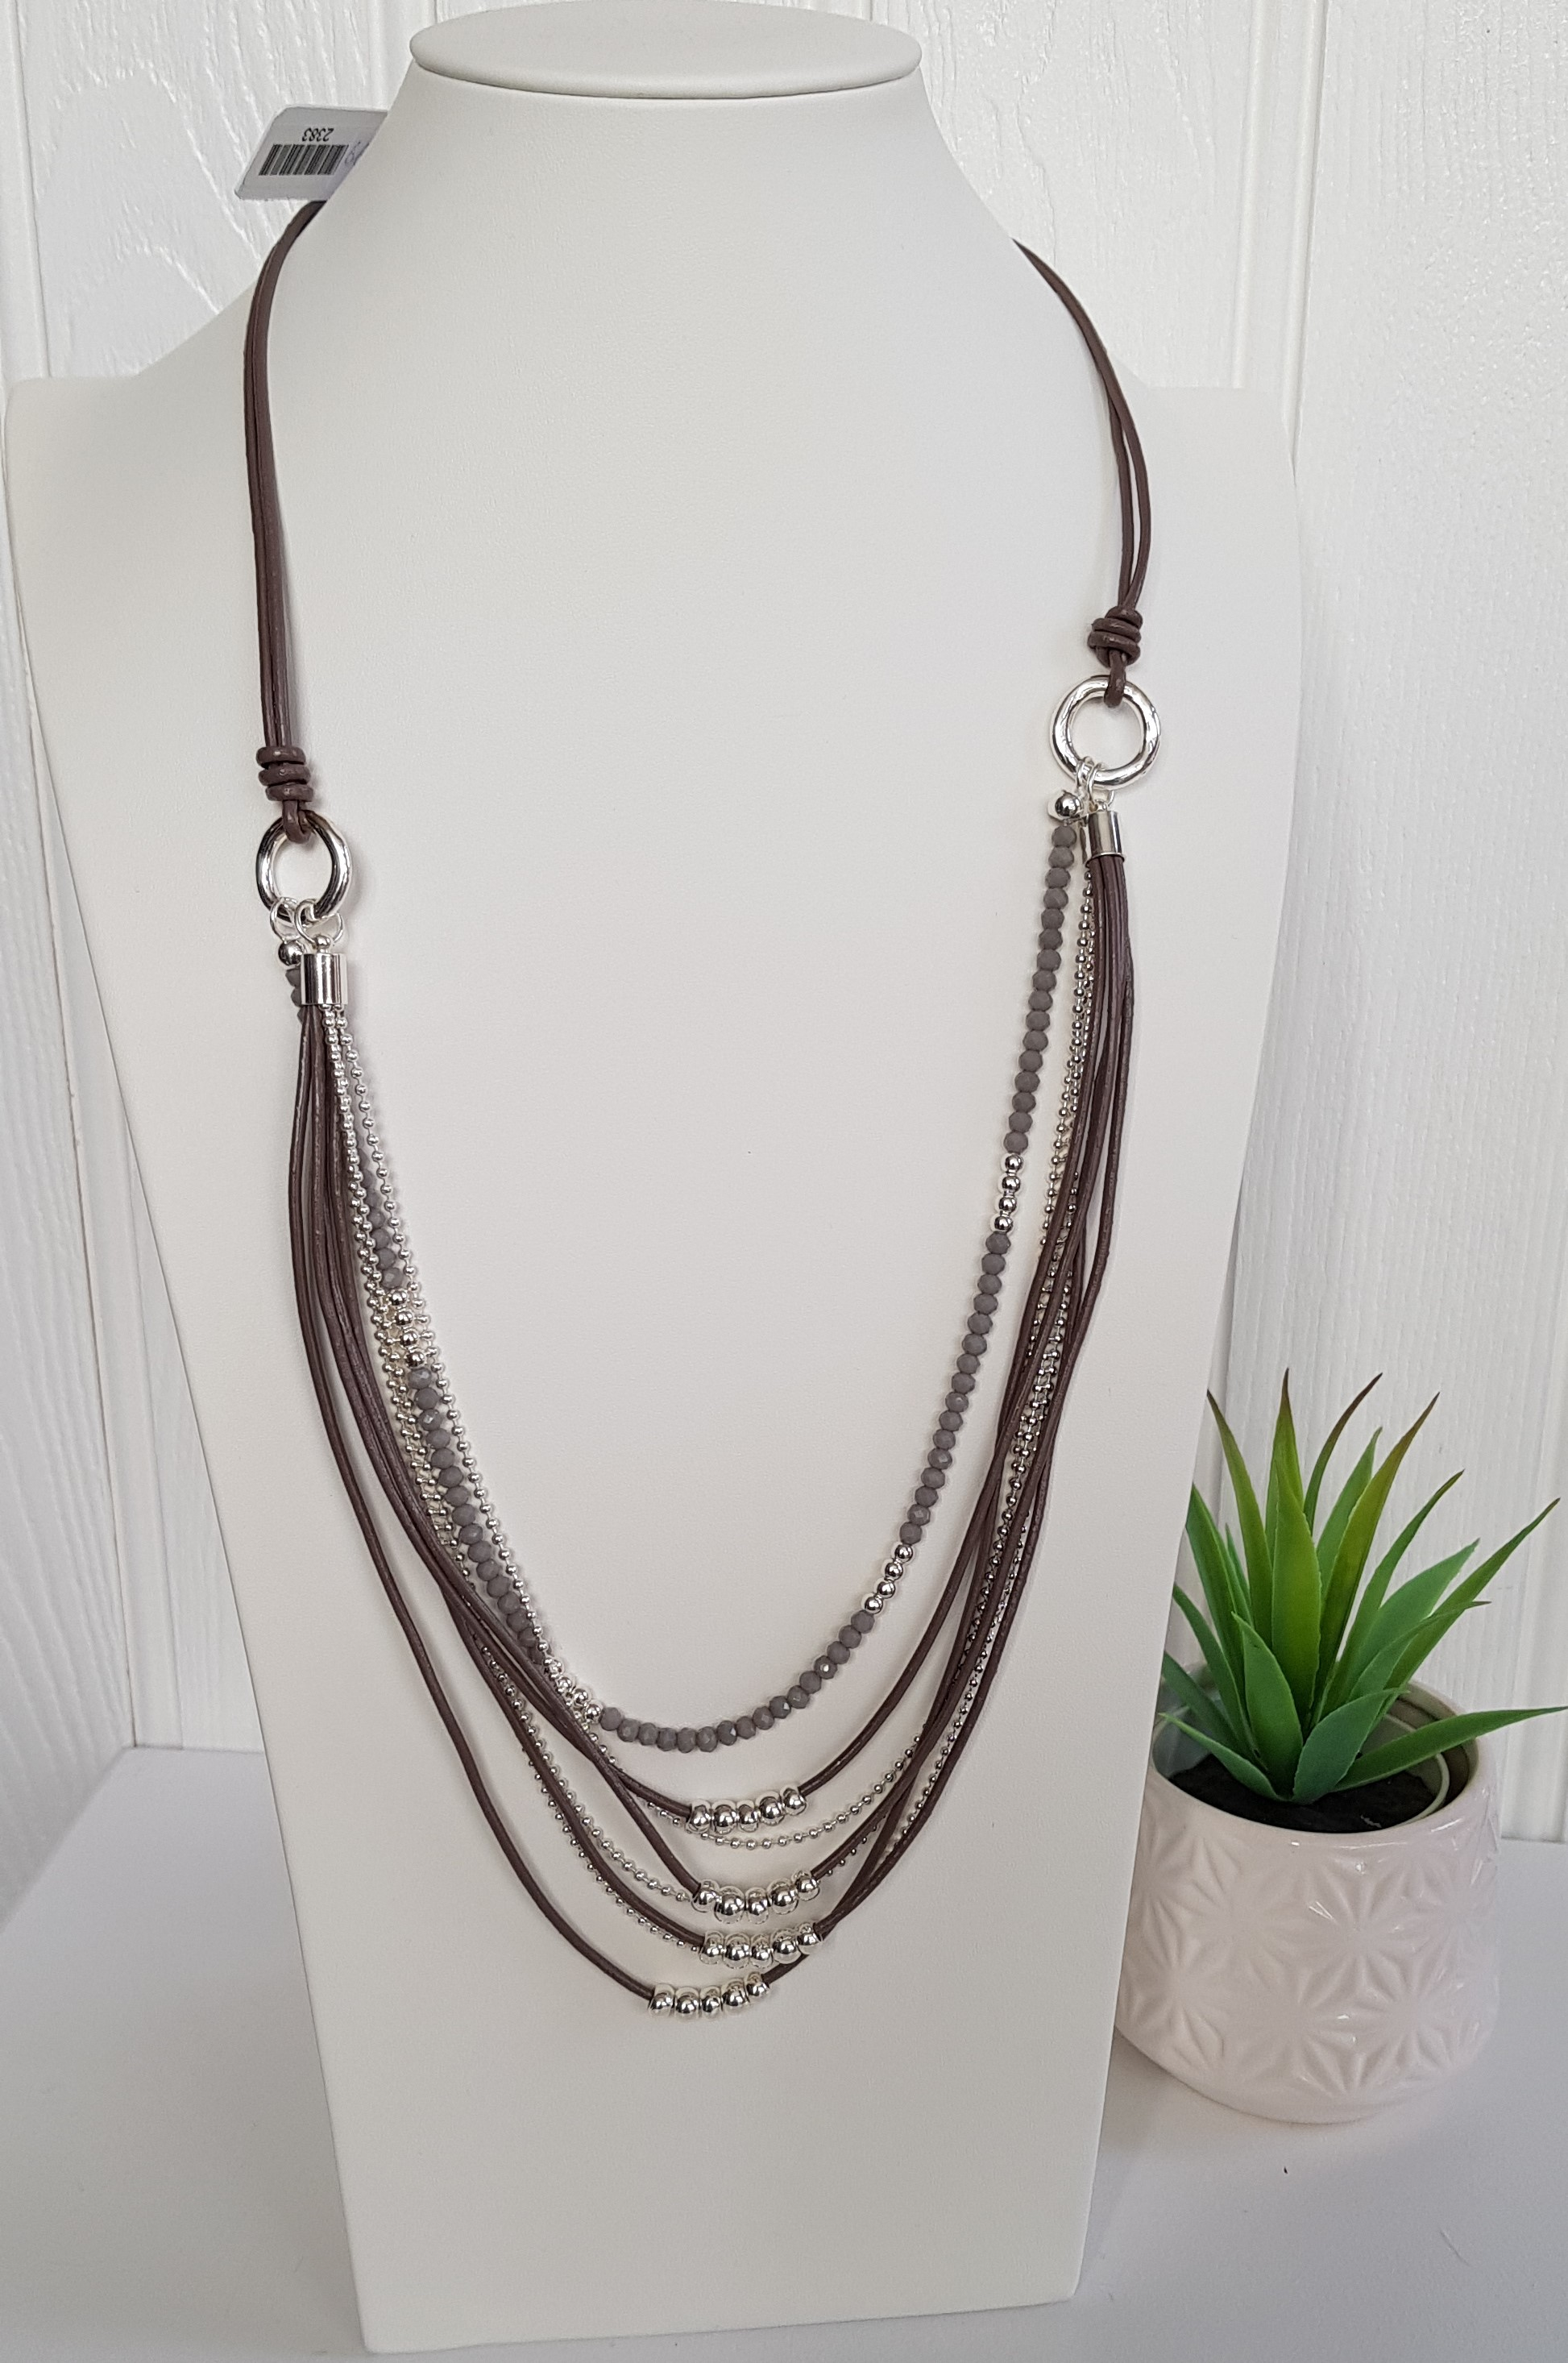 Necklace Long Leather Multi Strands With Beads